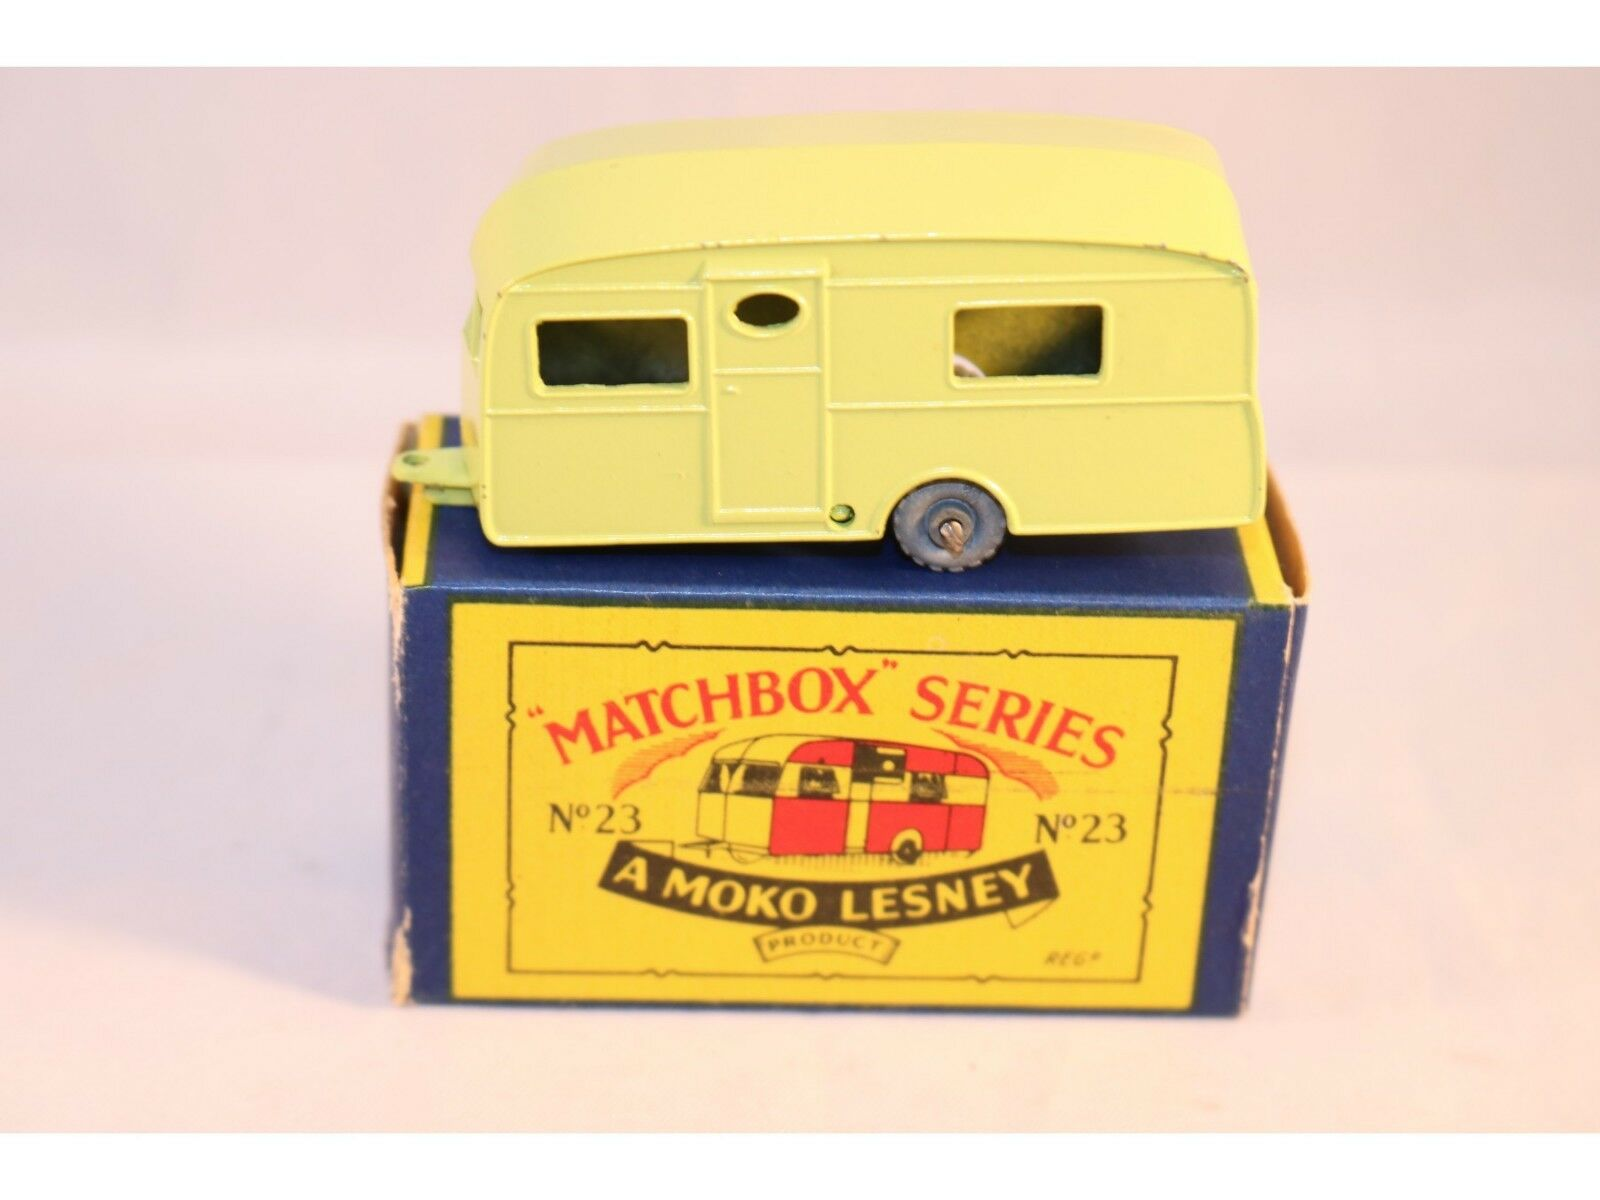 Matchscatola A Moko Lesney No 23 autoavan lime verde with GMW 99% mint in scatola